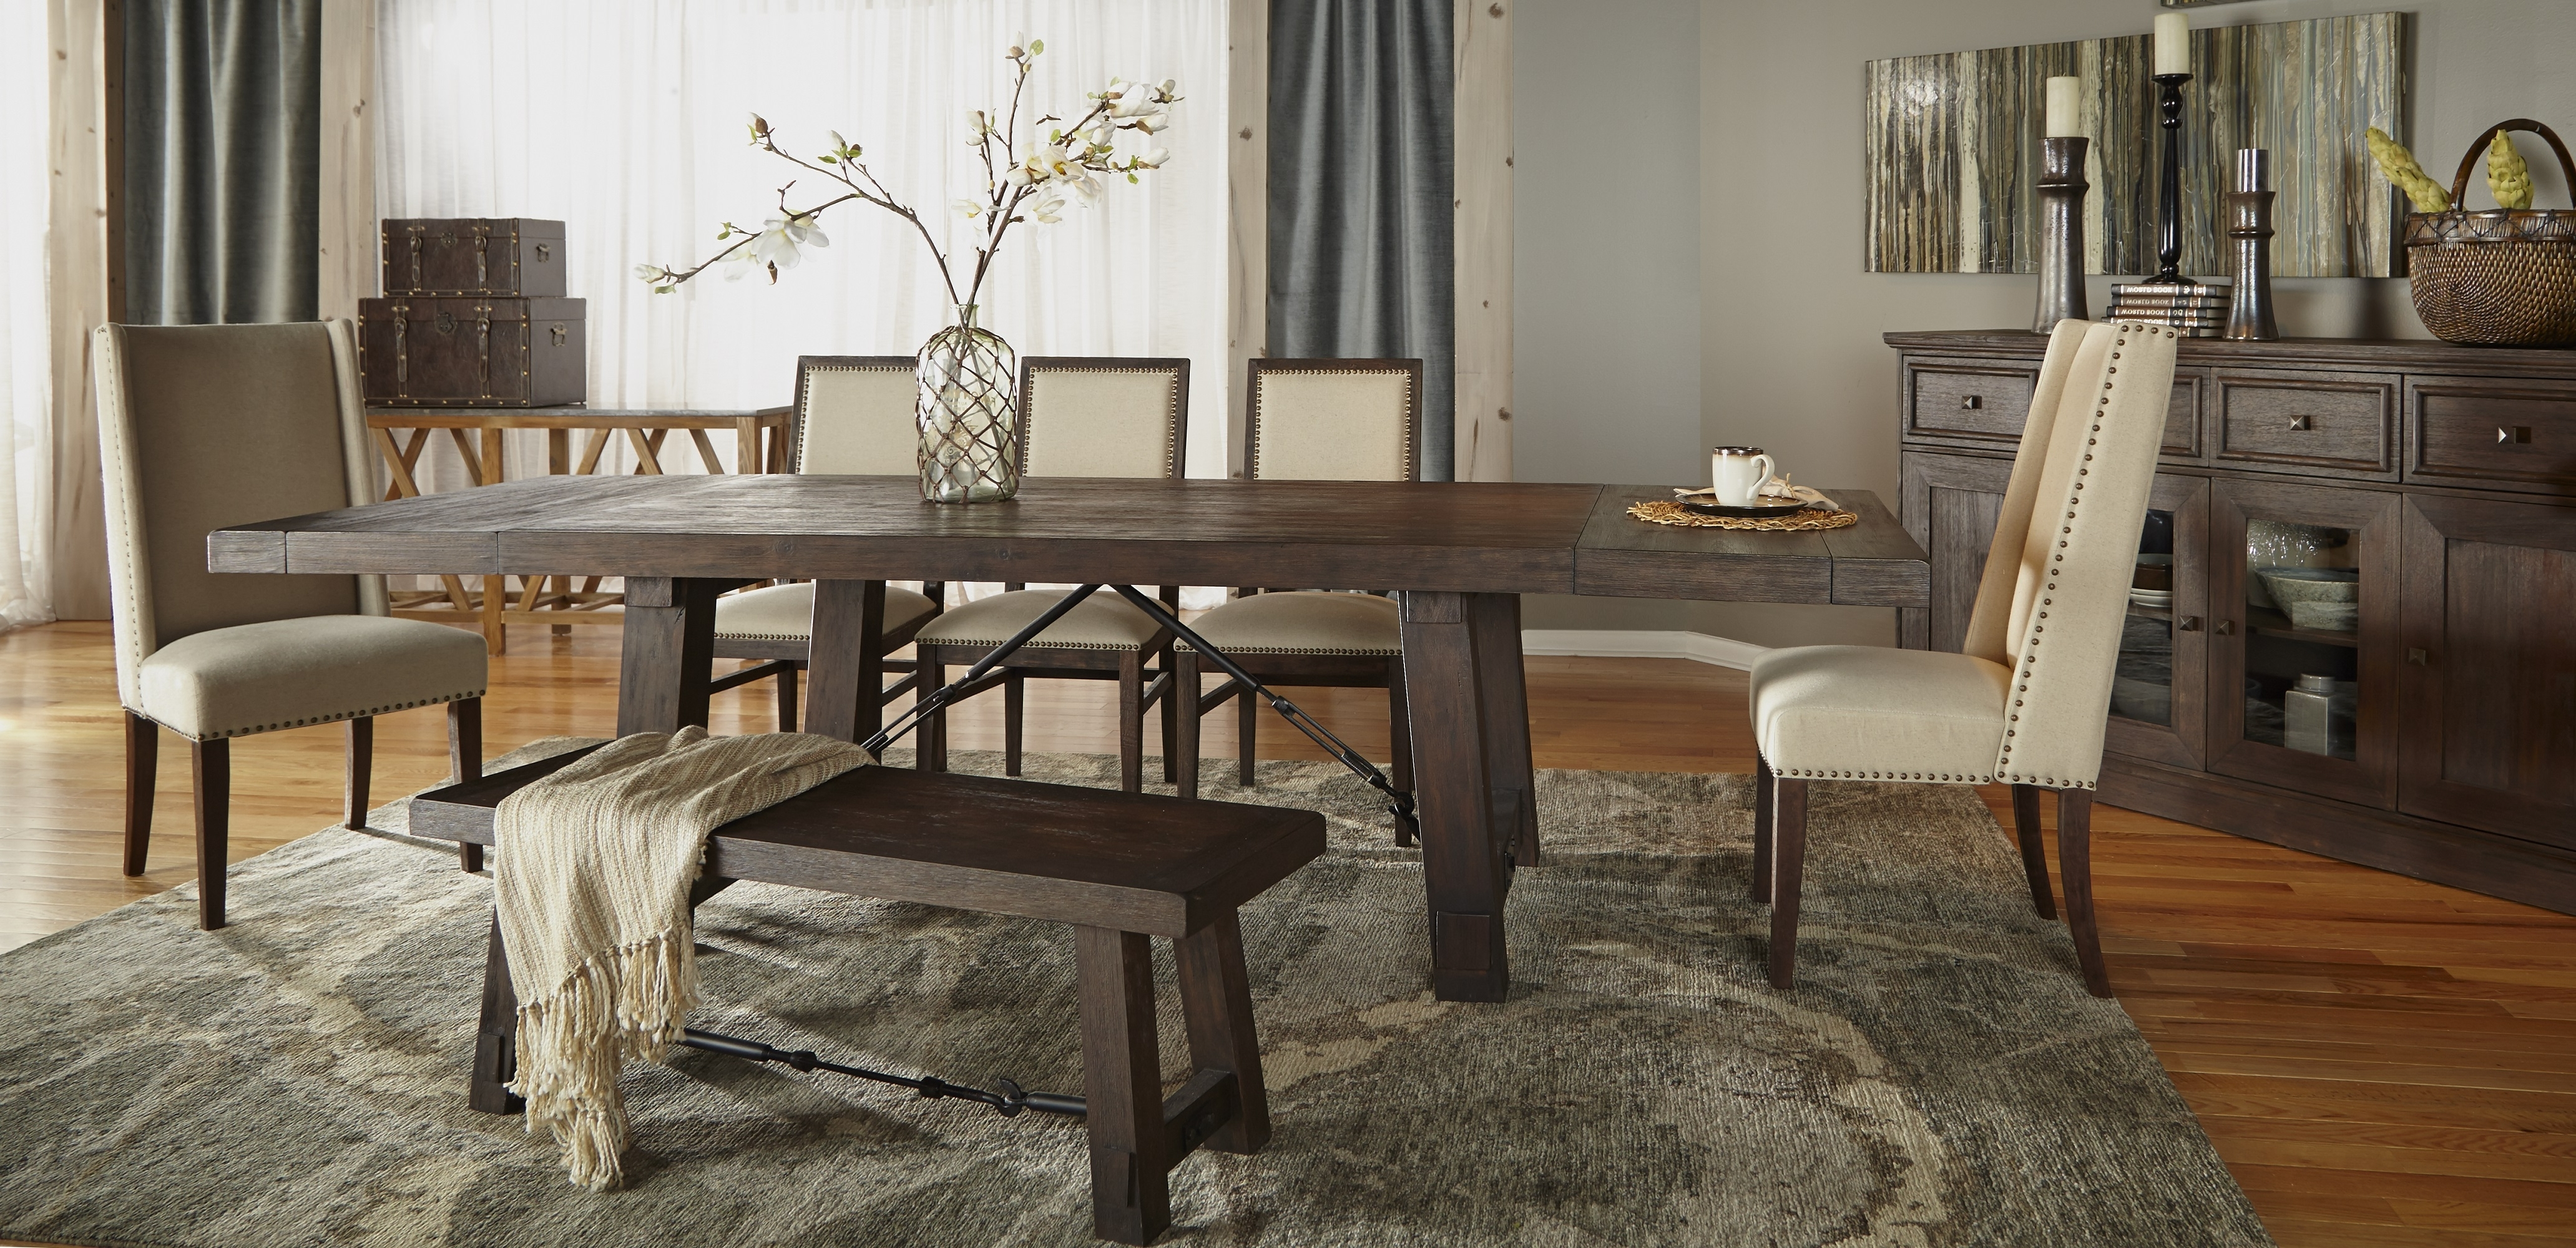 [%100+ [ Extension Dining Room Tables ] | Designs Vineyard Extension For Well Known Chapleau Ii 7 Piece Extension Dining Table Sets|Chapleau Ii 7 Piece Extension Dining Table Sets For Newest 100+ [ Extension Dining Room Tables ] | Designs Vineyard Extension|Best And Newest Chapleau Ii 7 Piece Extension Dining Table Sets Within 100+ [ Extension Dining Room Tables ] | Designs Vineyard Extension|Widely Used 100+ [ Extension Dining Room Tables ] | Designs Vineyard Extension Within Chapleau Ii 7 Piece Extension Dining Table Sets%] (View 23 of 25)